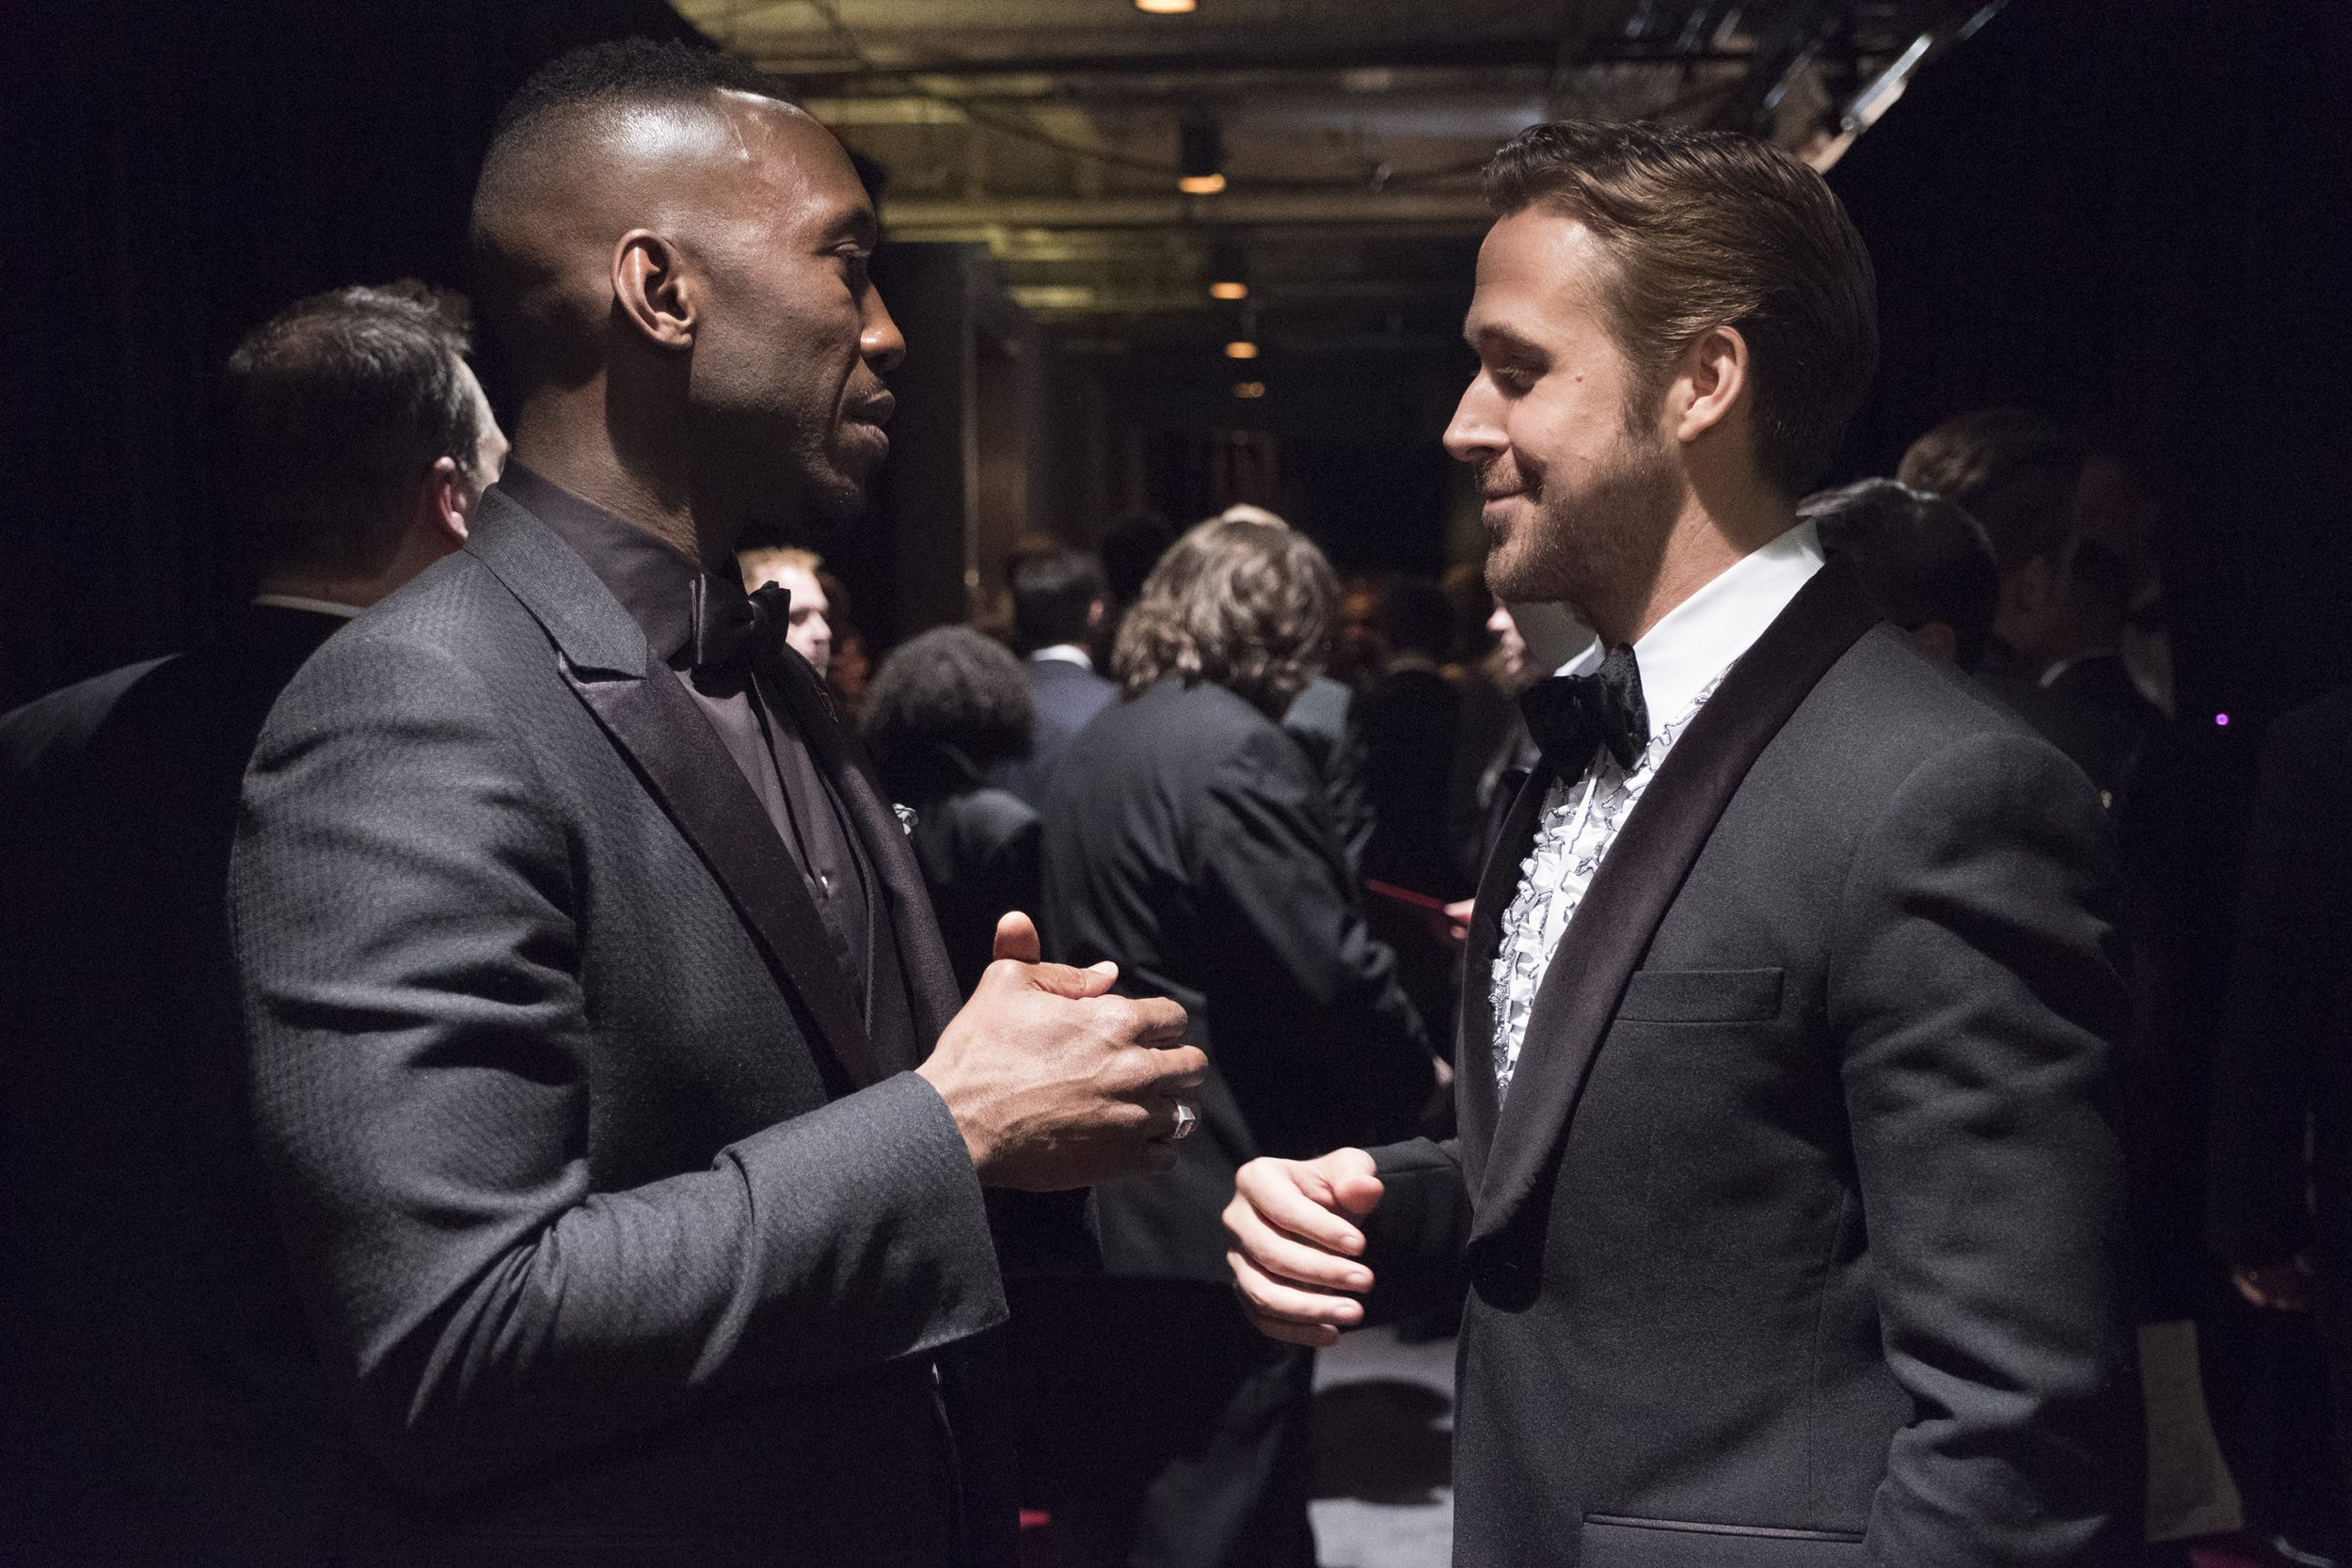 THE OSCARS(r) - The 89th Oscars(r)  broadcasts live on Oscar(r) SUNDAY, FEBRUARY 26, 2017, on the ABC Television Network. (ABC/Adam Rose) MAHERSHALA ALI, RYAN GOSLING